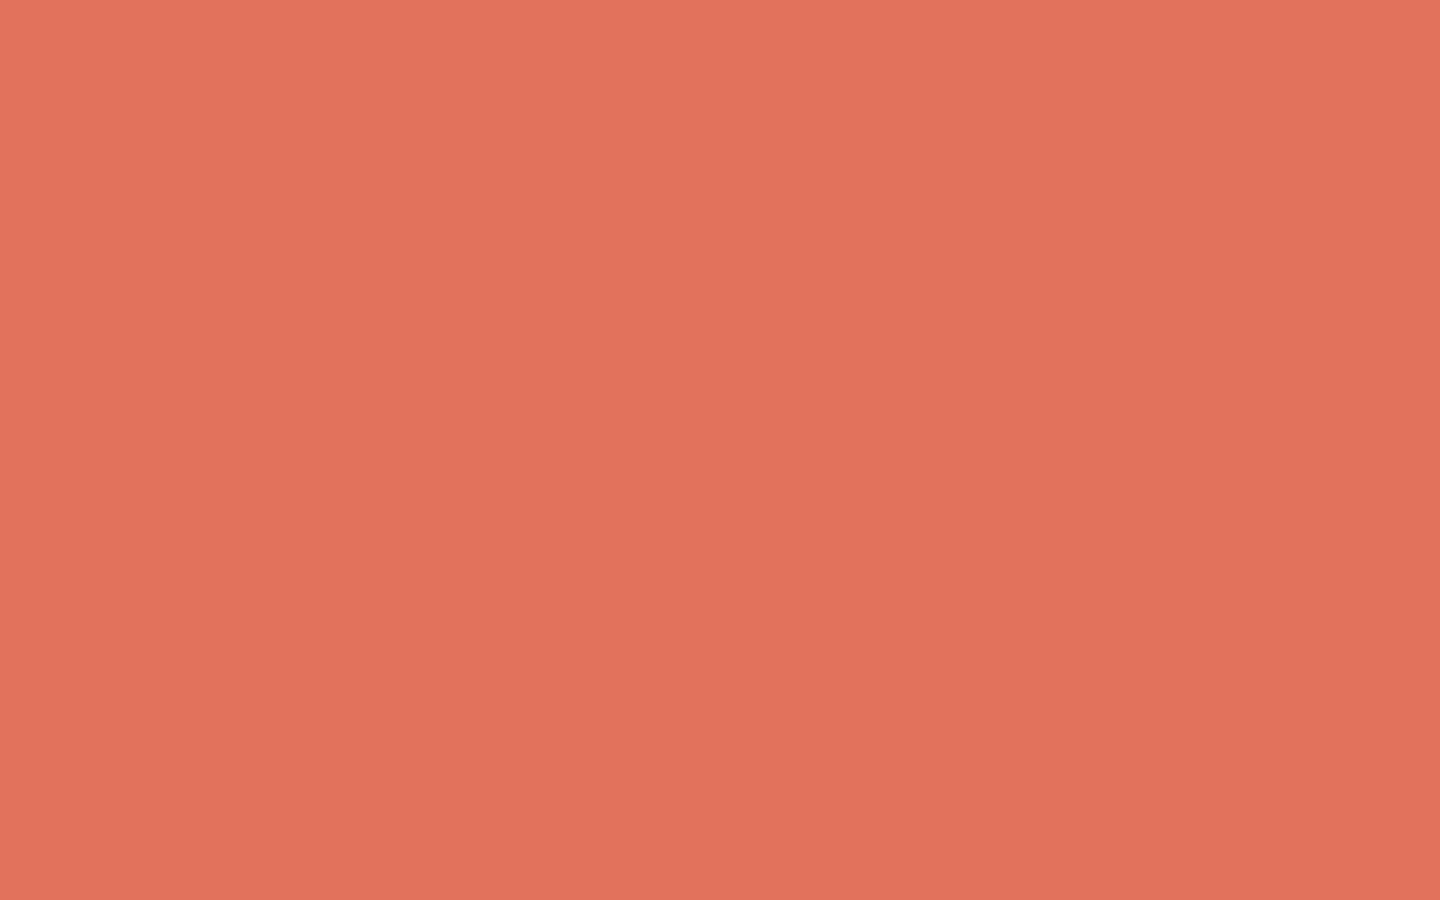 1440x900 Terra Cotta Solid Color Background